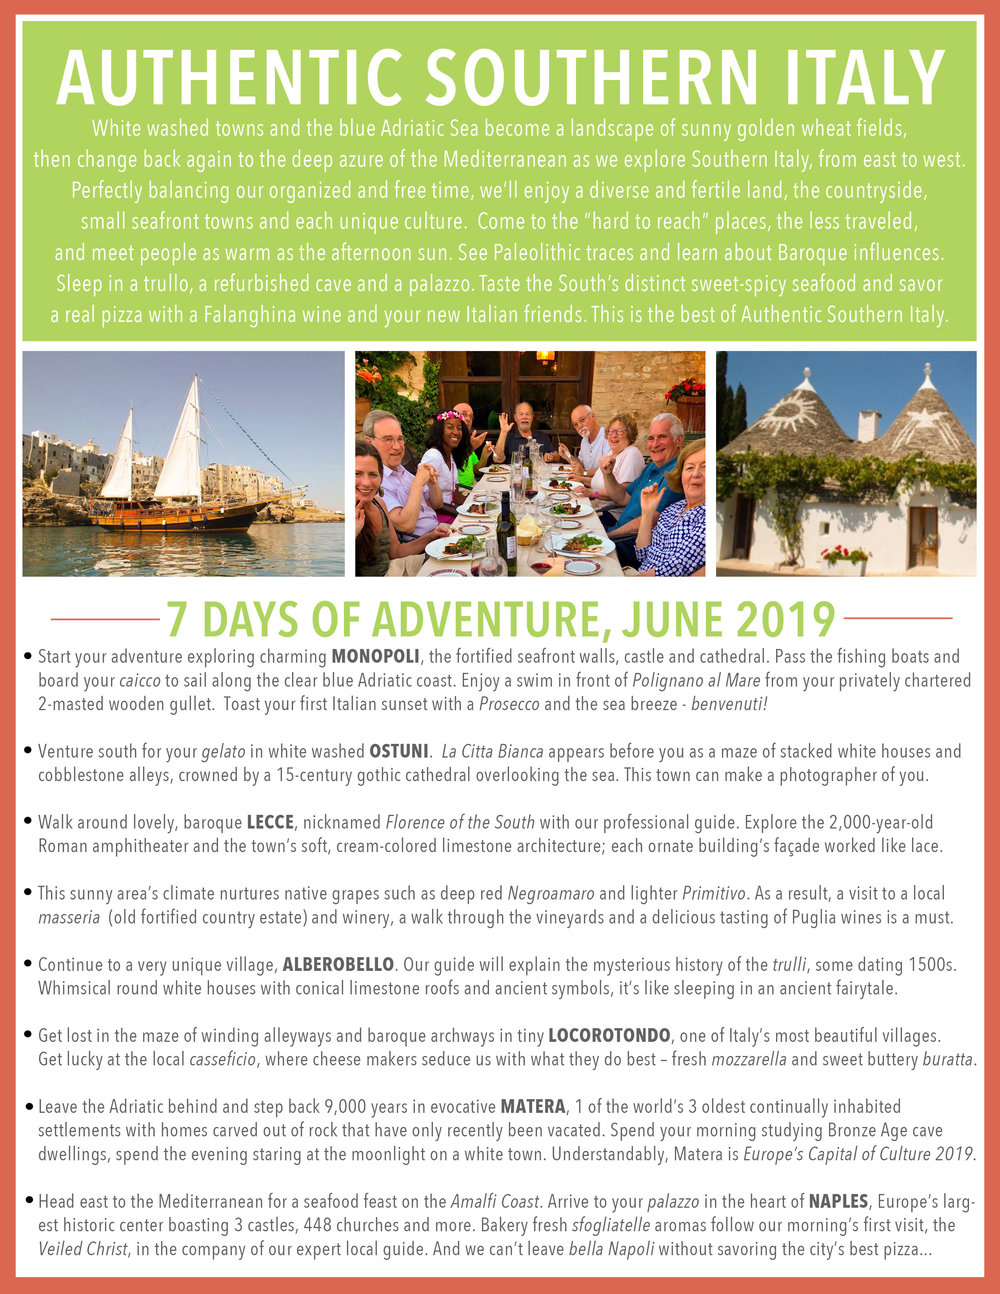 Dolce Vita Adventures Authentic Southern Italy 2019-1.jpg